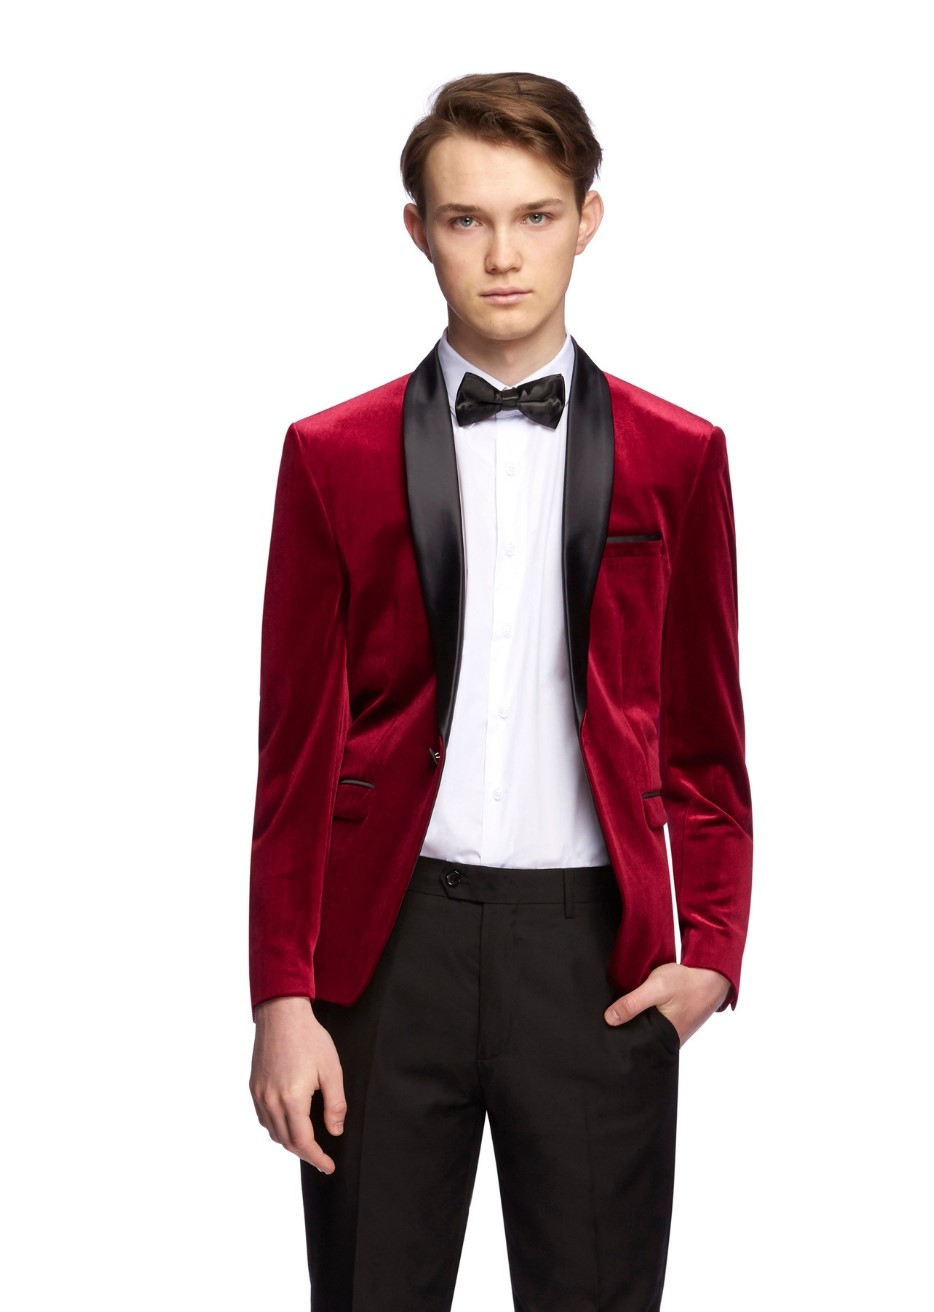 The Velvet Tuxedo Package $249. - Own the whole outfit. The jacket, shirt, slim fit pant and bow tie. Wear the jacket later with a pair of jeans, look the coolest at every party.